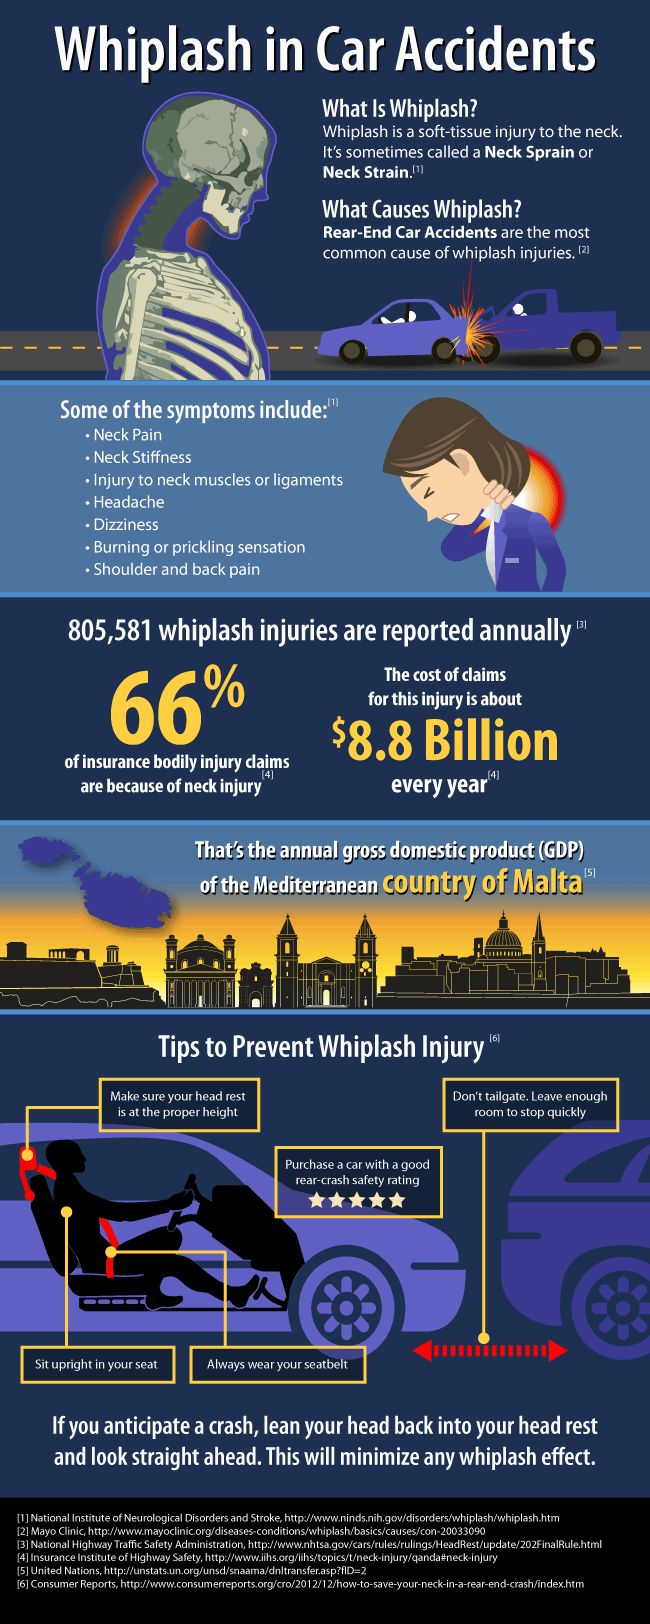 Have you been in a car accident? Are you having pain? See a qualified health care professional that can help!